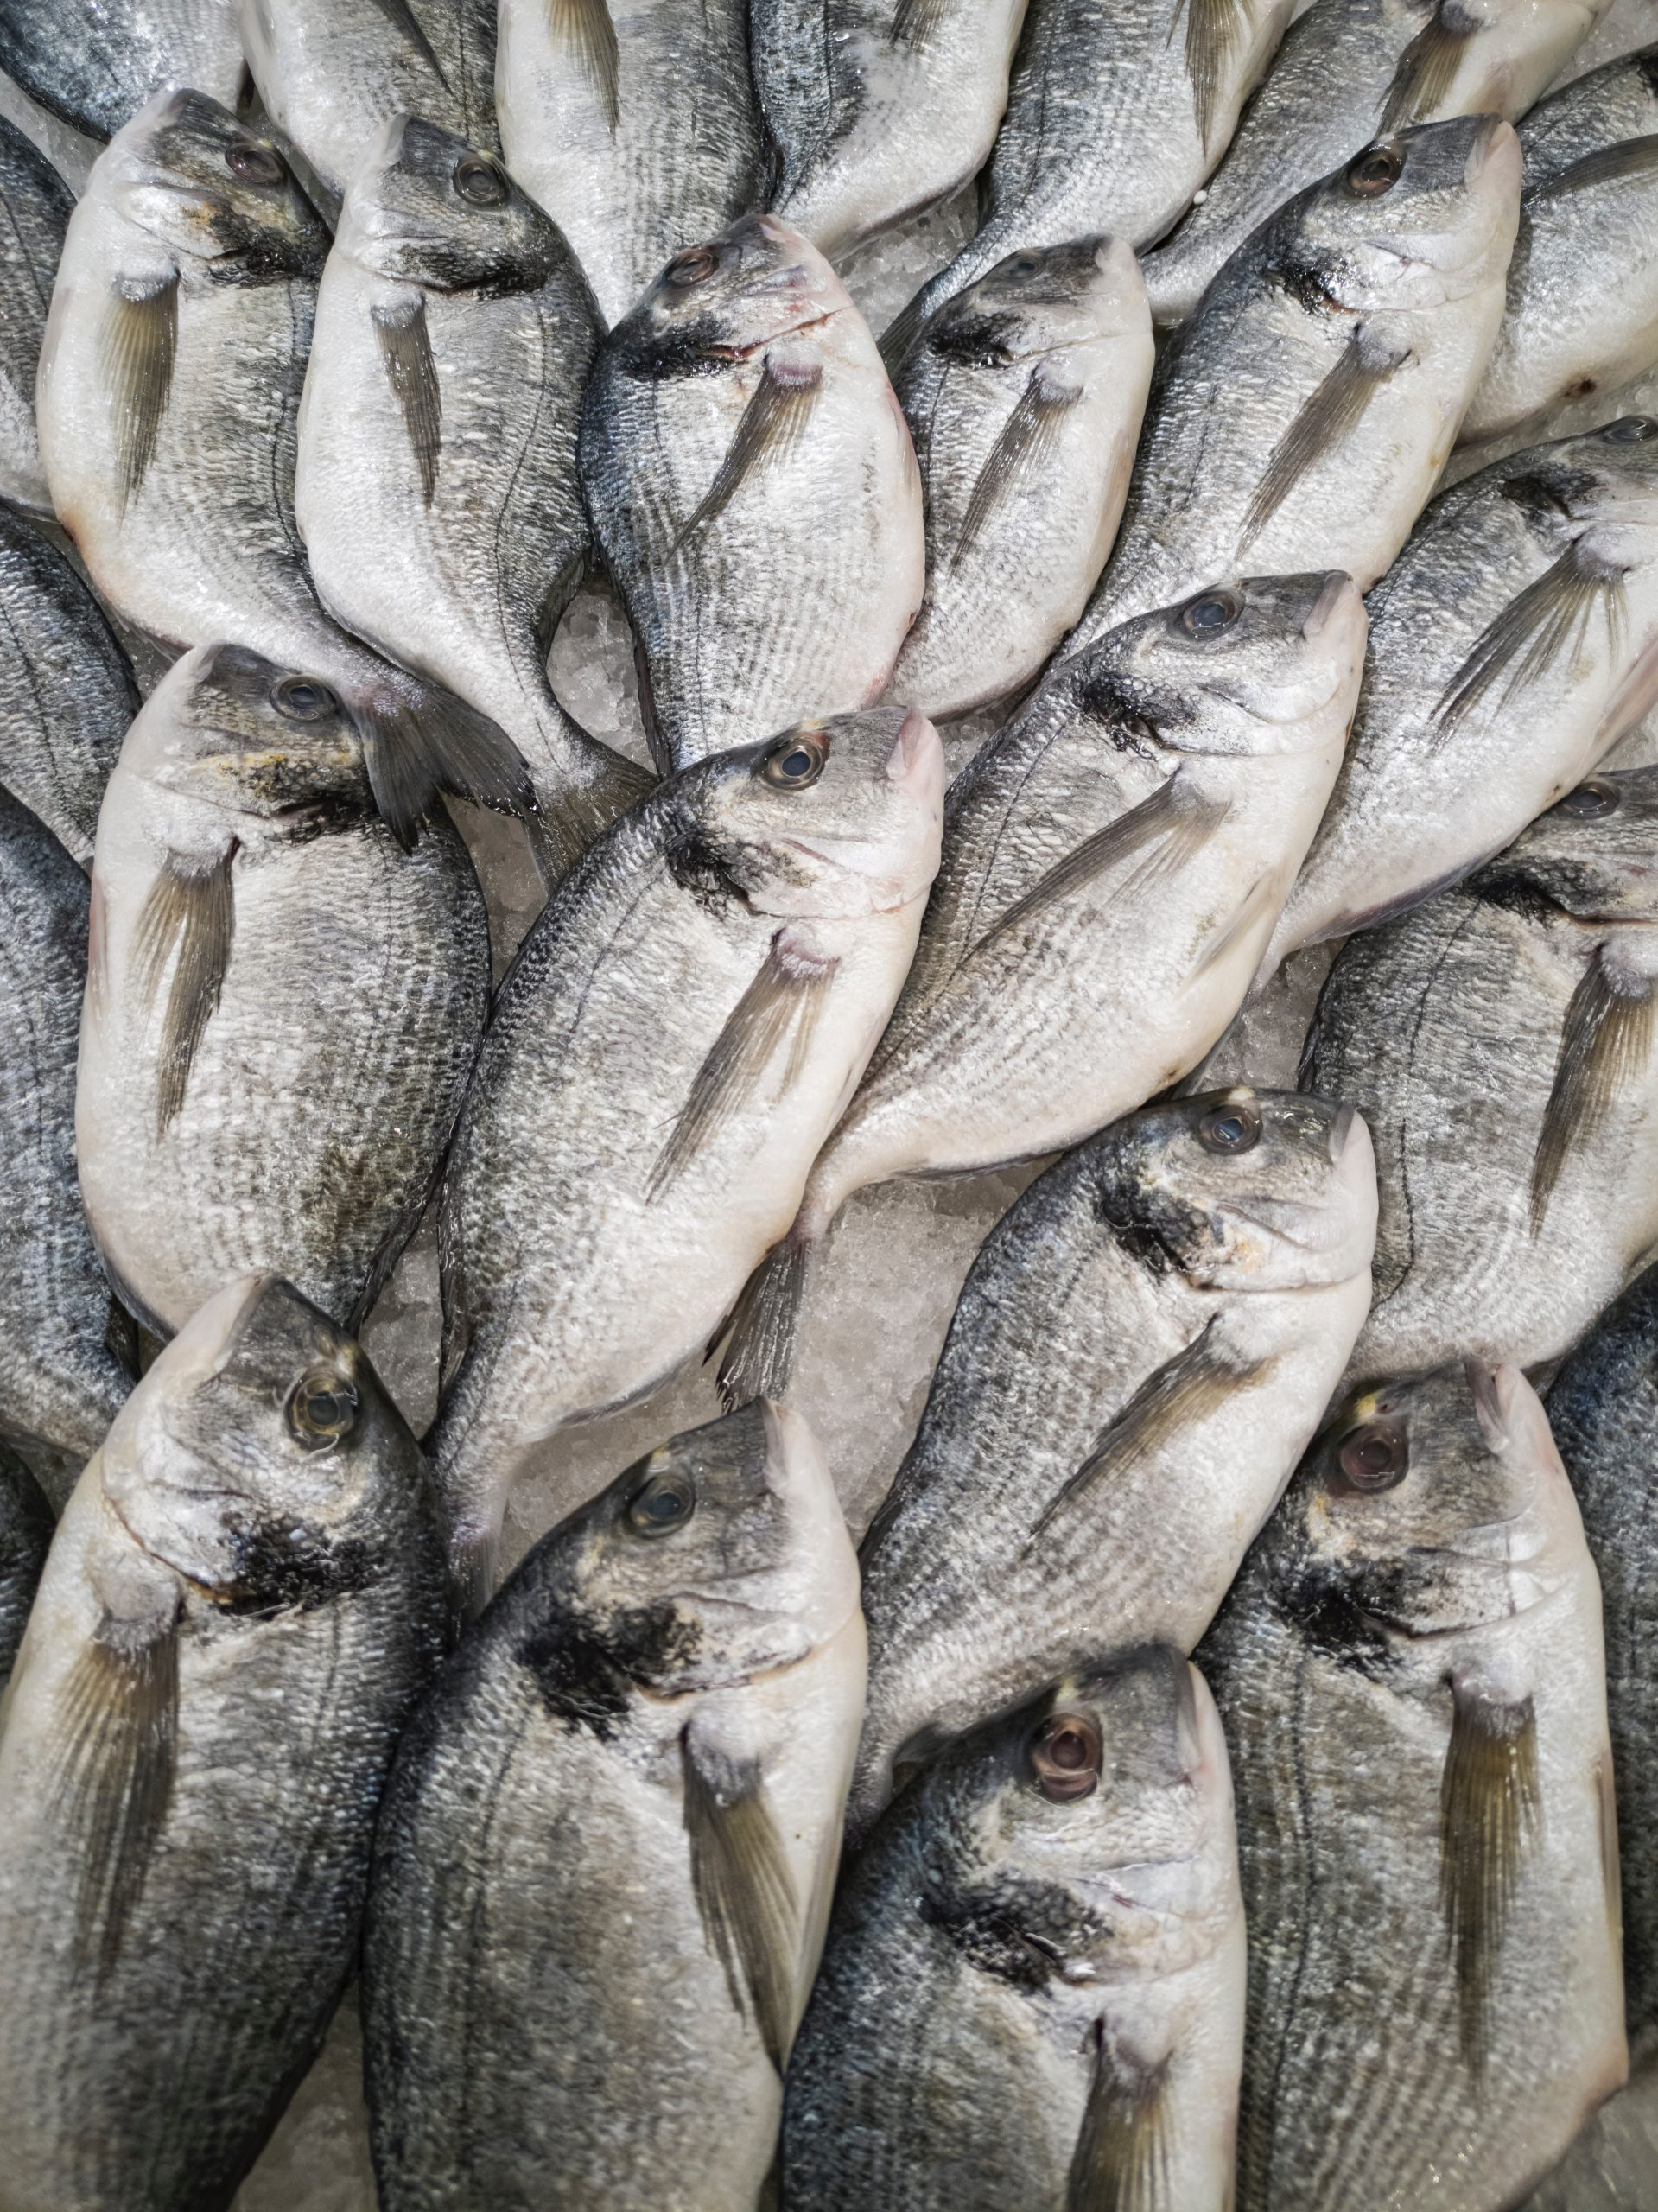 Fish and Seafood consumption to grow 13.69% in 2029